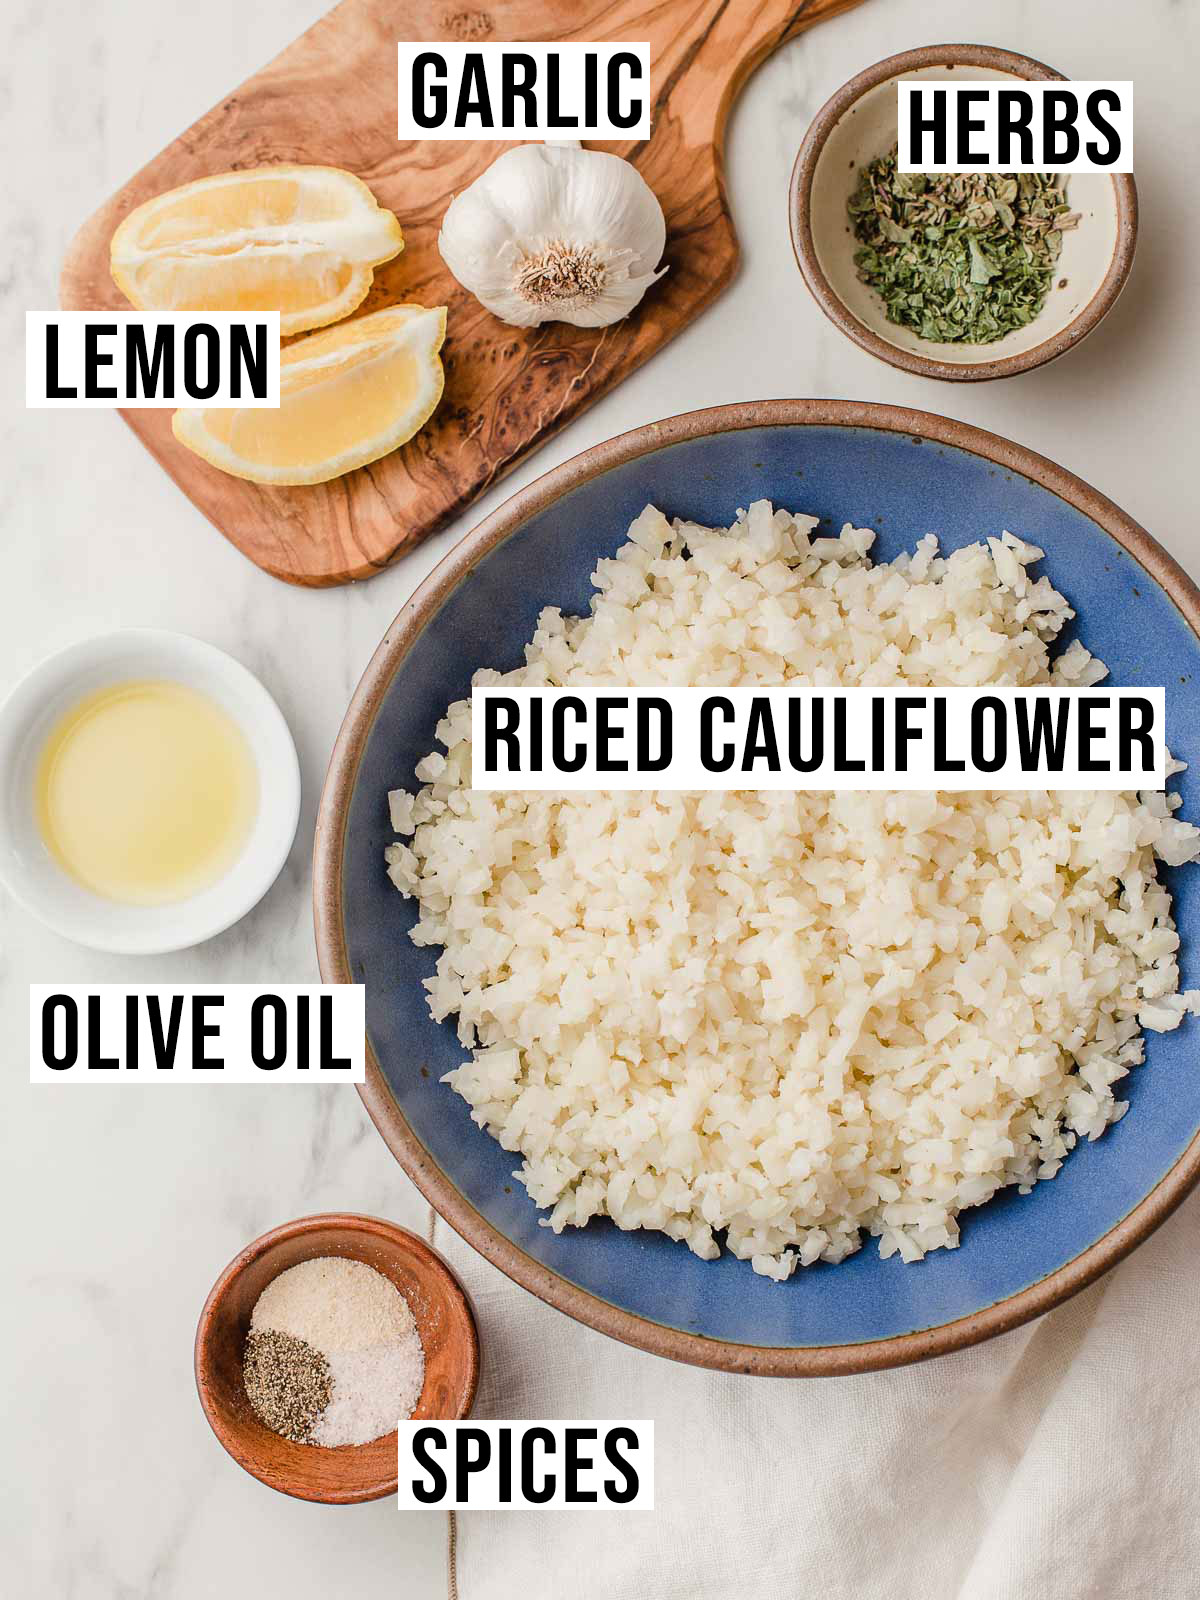 Greek cauliflower rice ingredients on a table.